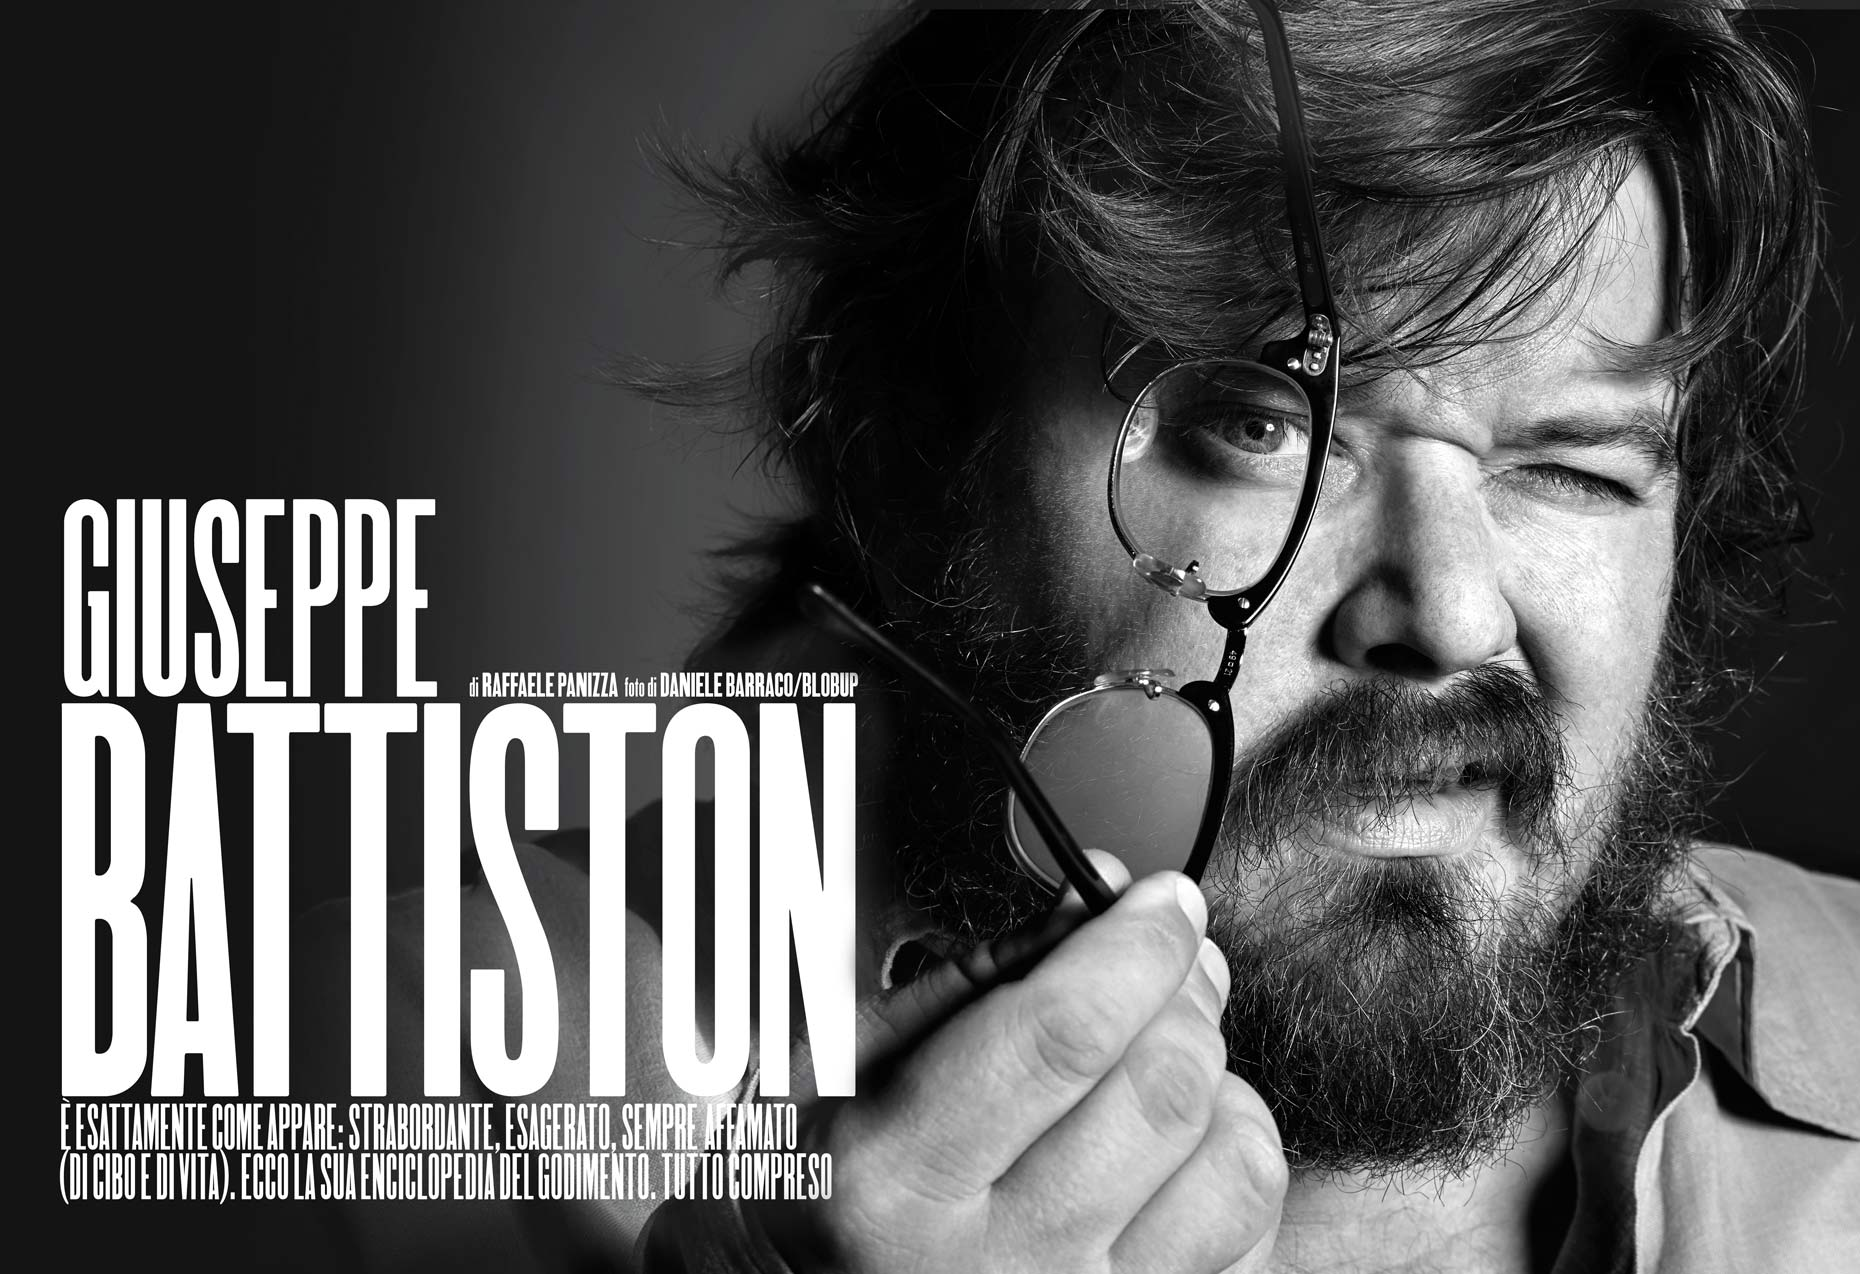 GIUSEPPE BATTISTON